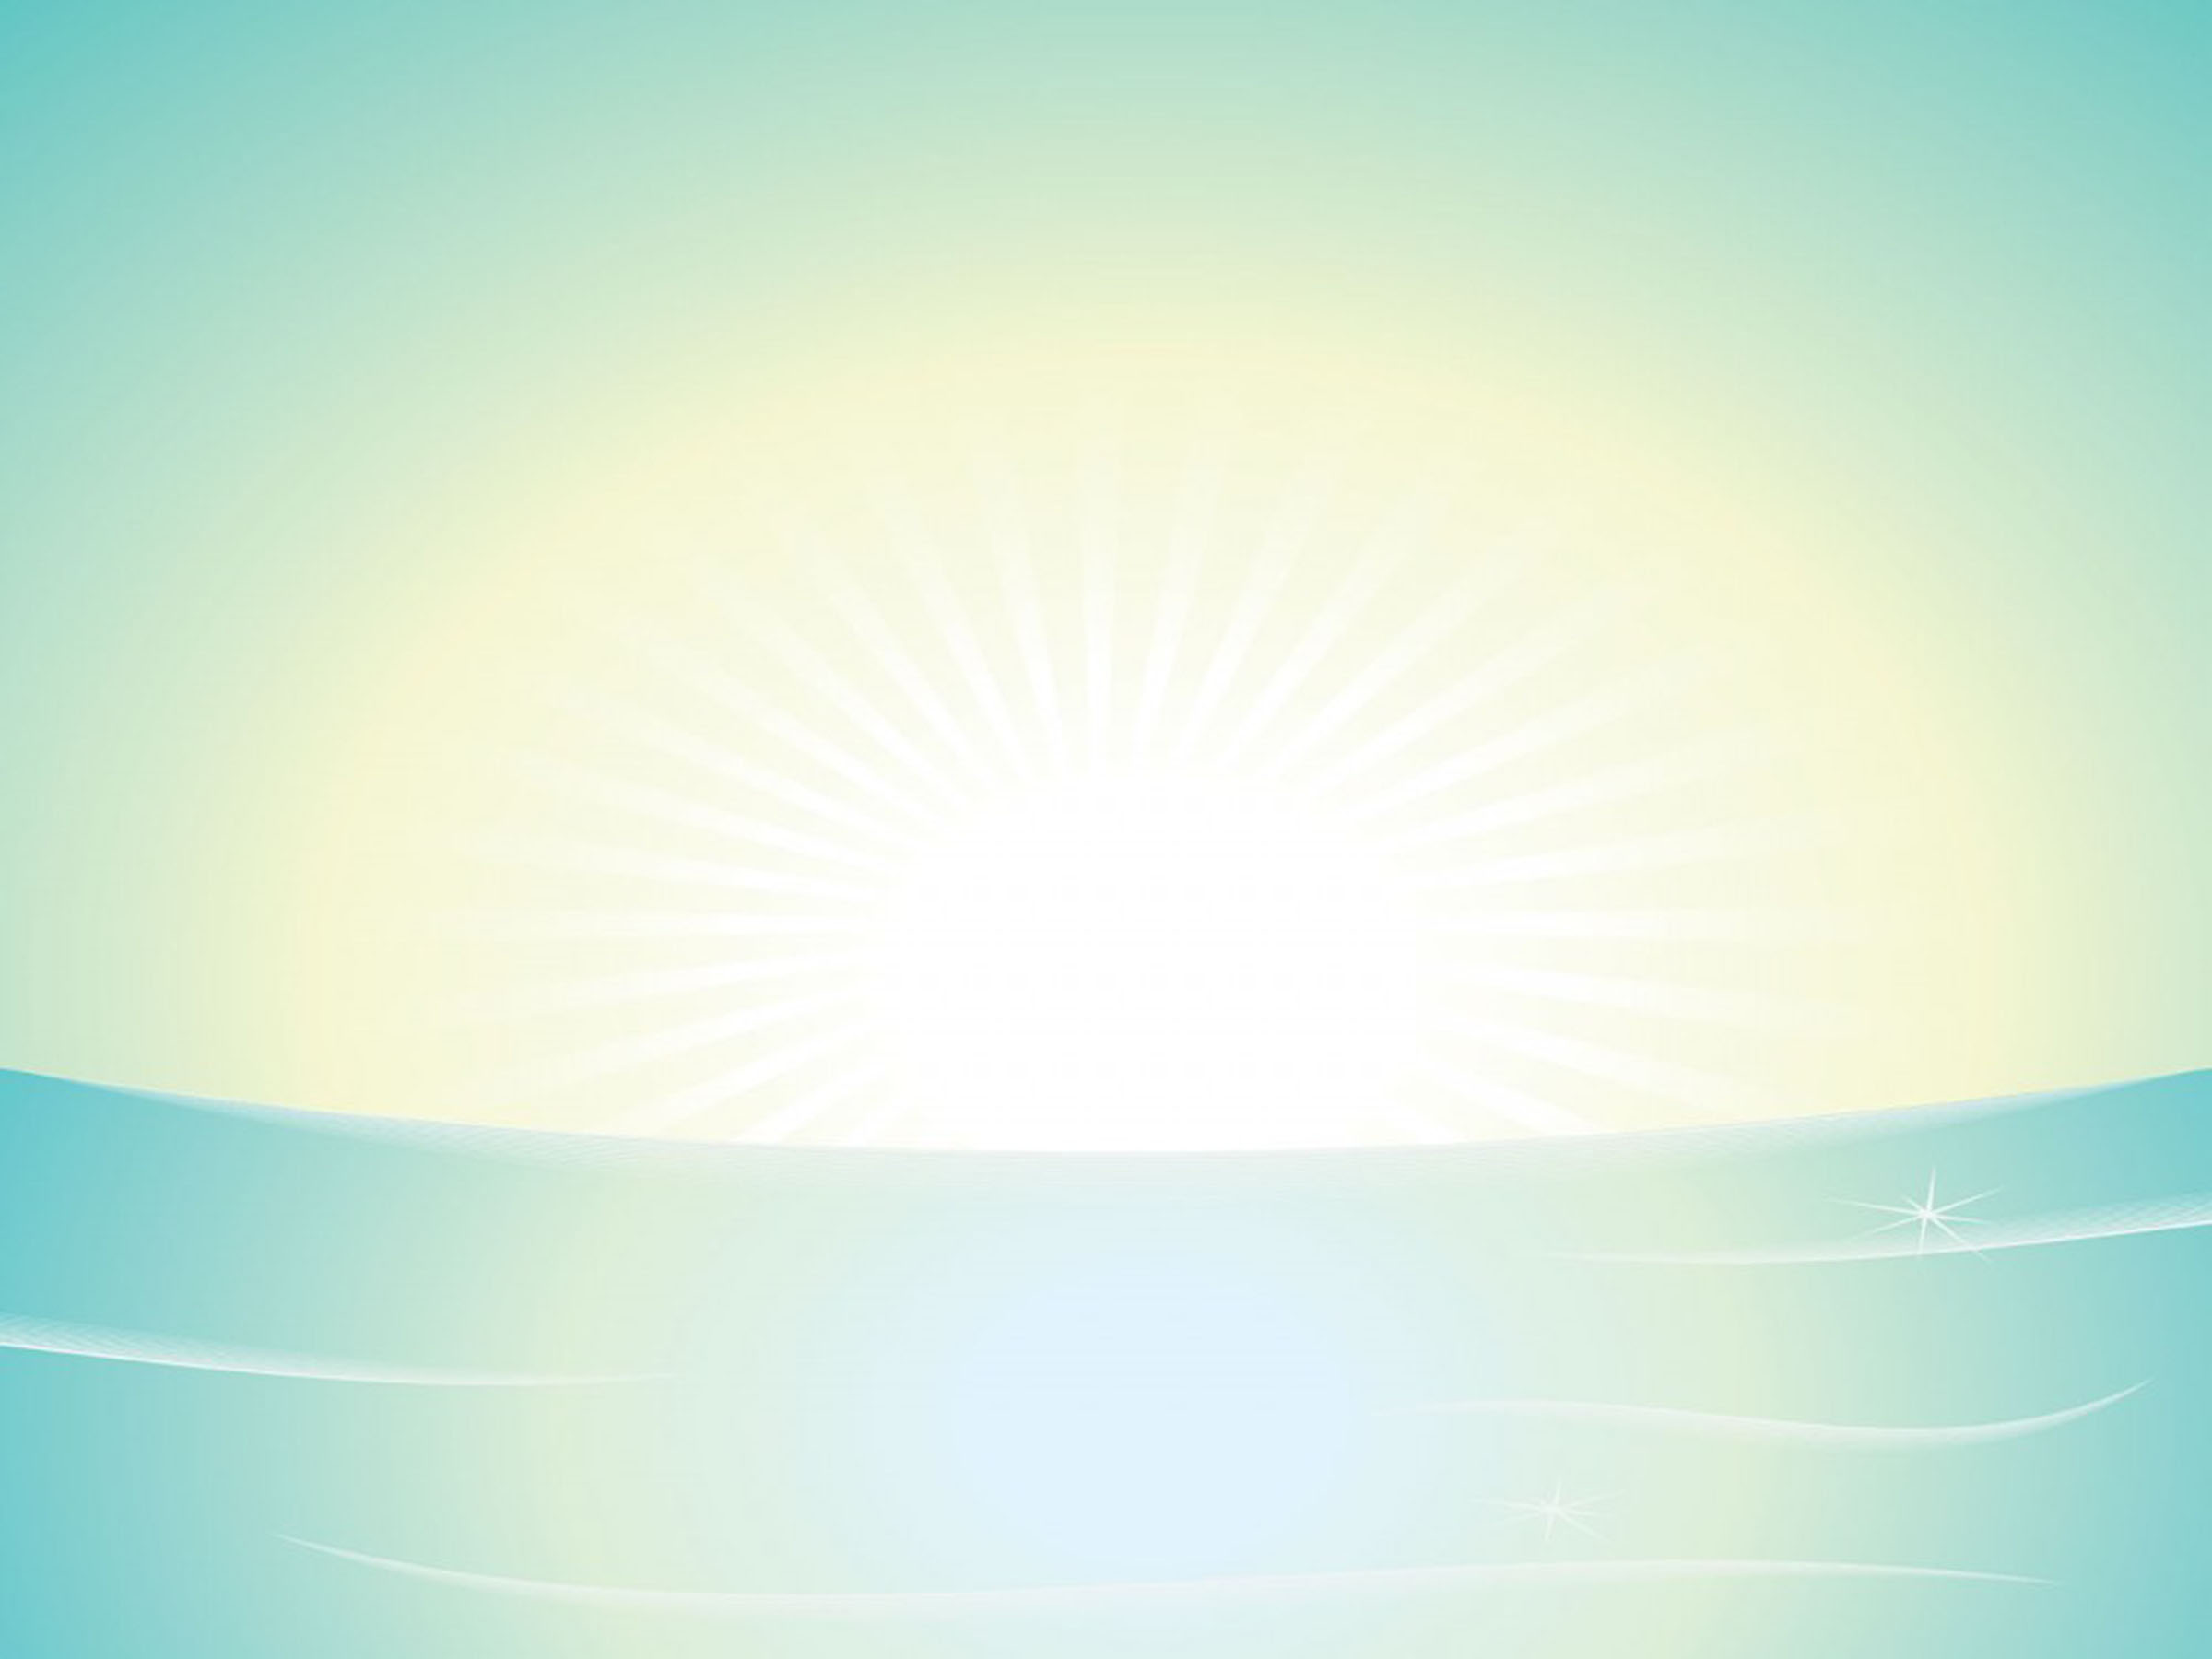 bluishLight-Sunshine-PPT-Backgrounds-1000x750